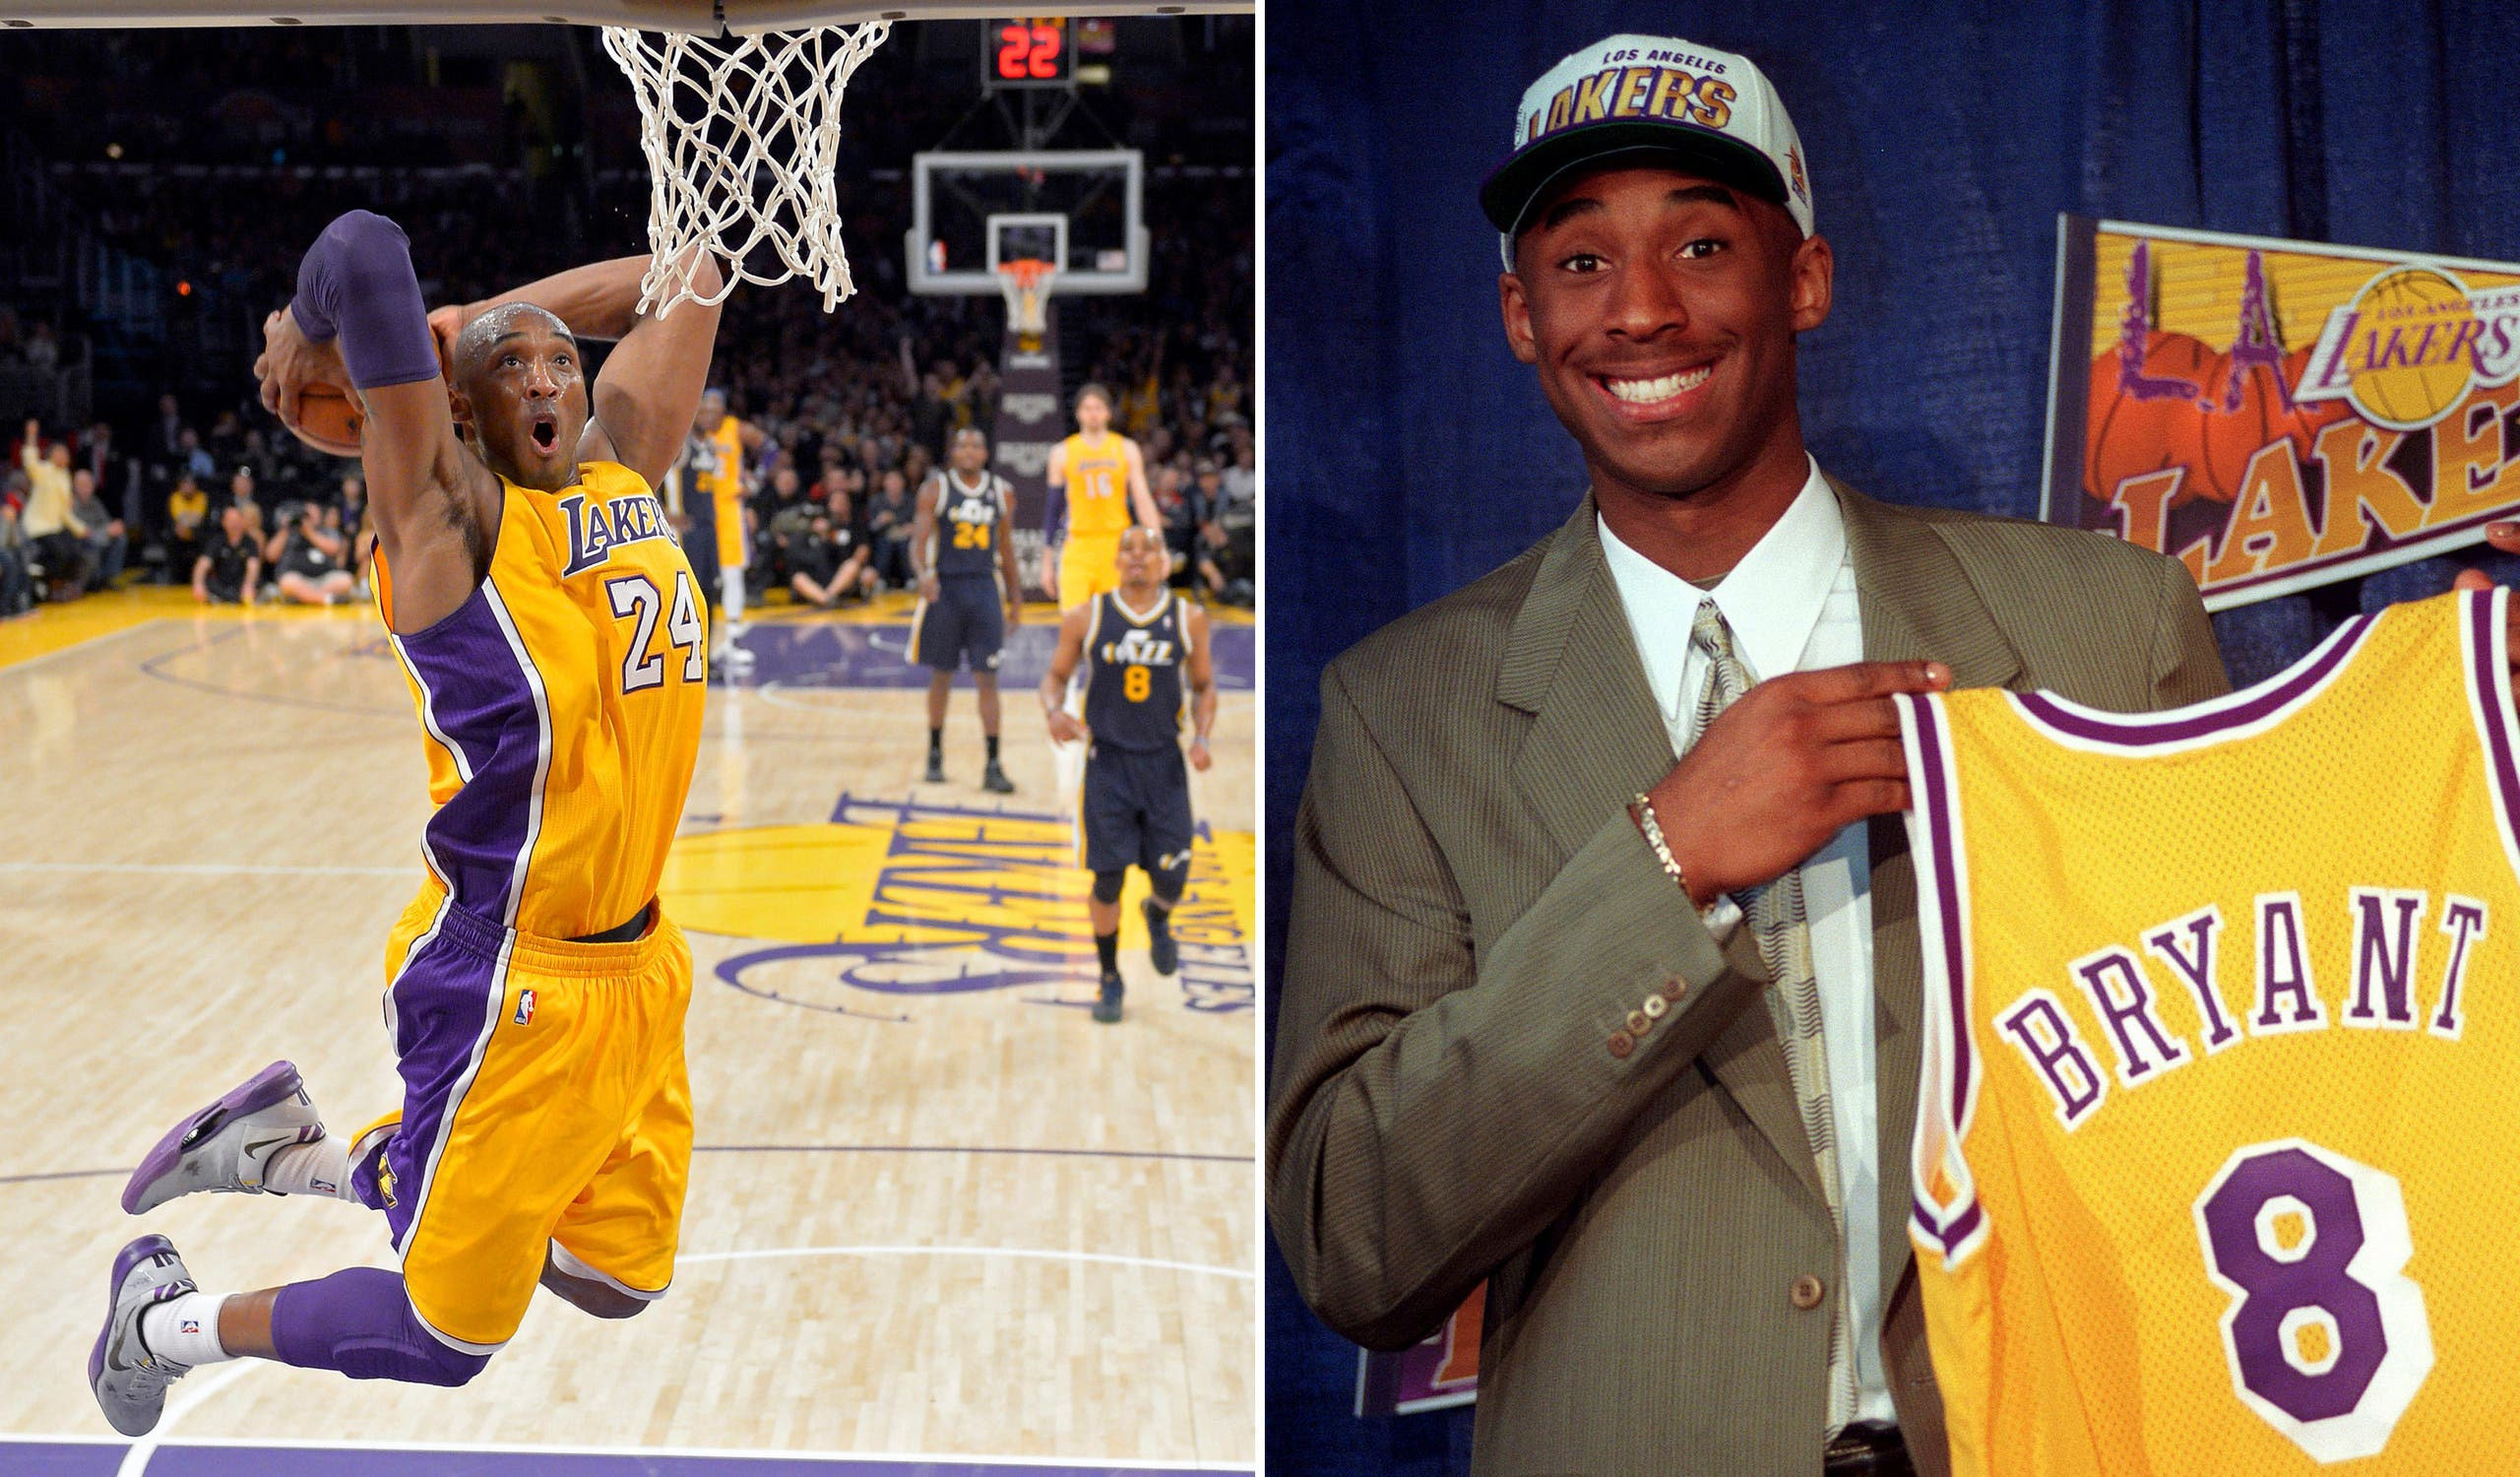 At left, in a Jan. 25, 2013, file photo, Los Angeles Lakers guard Kobe Bryant goes up for a dunk during the first half of an NBA basketball game against the Utah Jazz, in Los Angeles. At right, in a July 12, 1996, file photo, Kobe Bryant, 17, jokes with the media as he holds his Los Angeles Lakers jersey during a news conference in Inglewood, California. (AP)